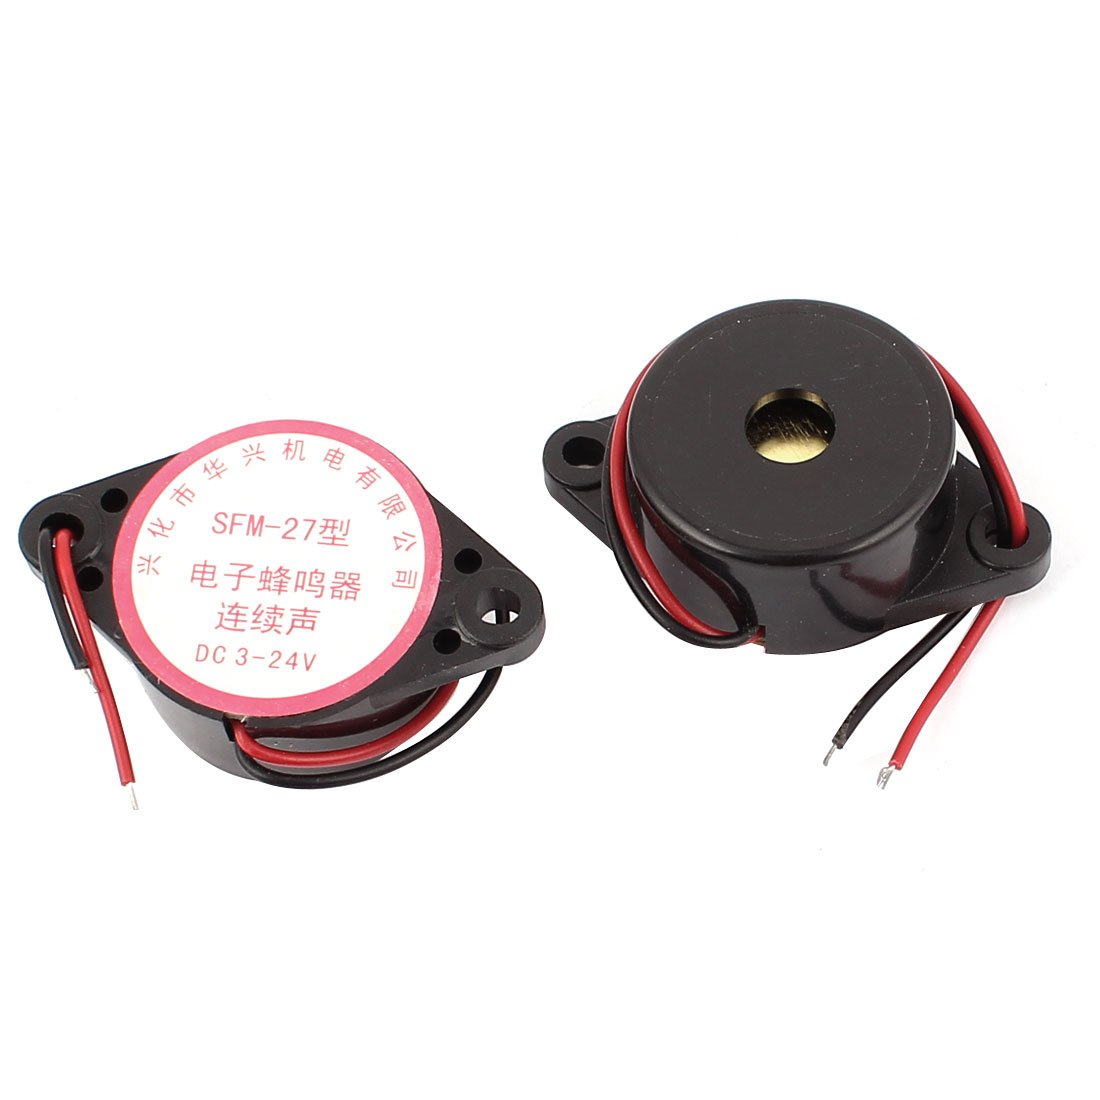 2 Pcs SFM27 DC3-24V 2-Wired Continuous Sound Electronic Alarm Buzzer Black